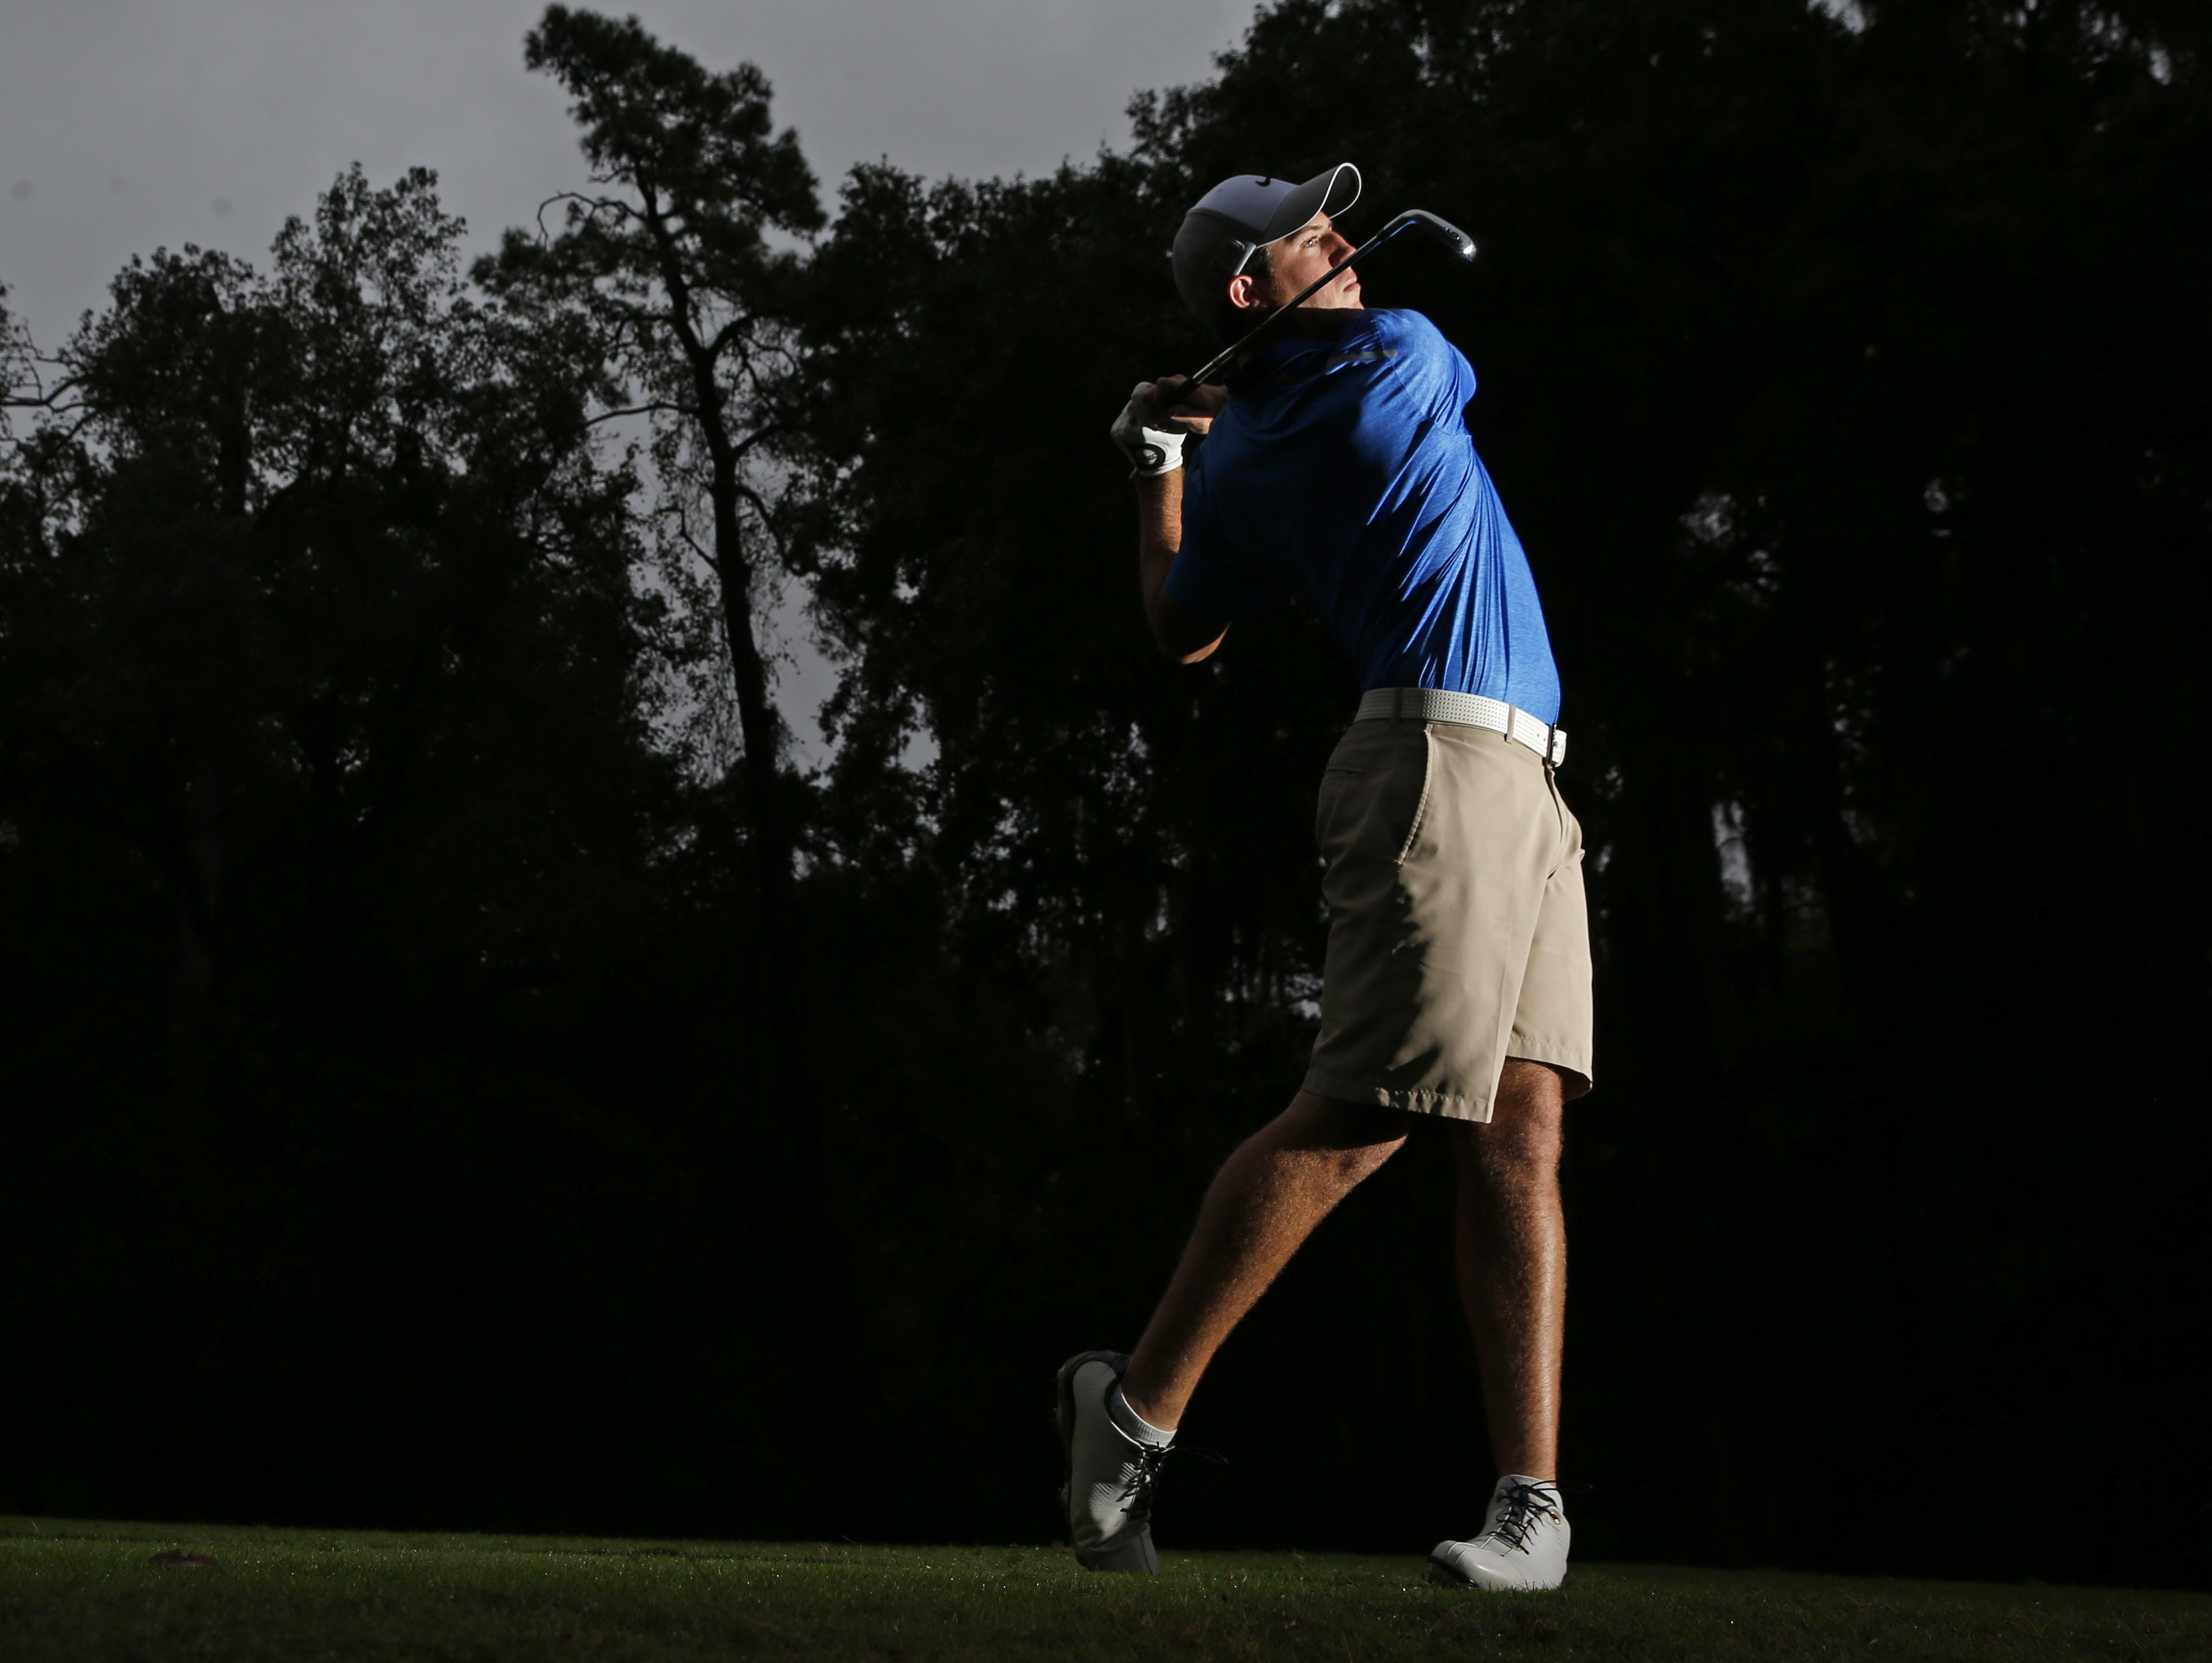 The 2015 All-Big Bend Player of the Year for boys golf is Taylor County senior Cole Wentworth, who won district and regional titles for the Bulldogs.